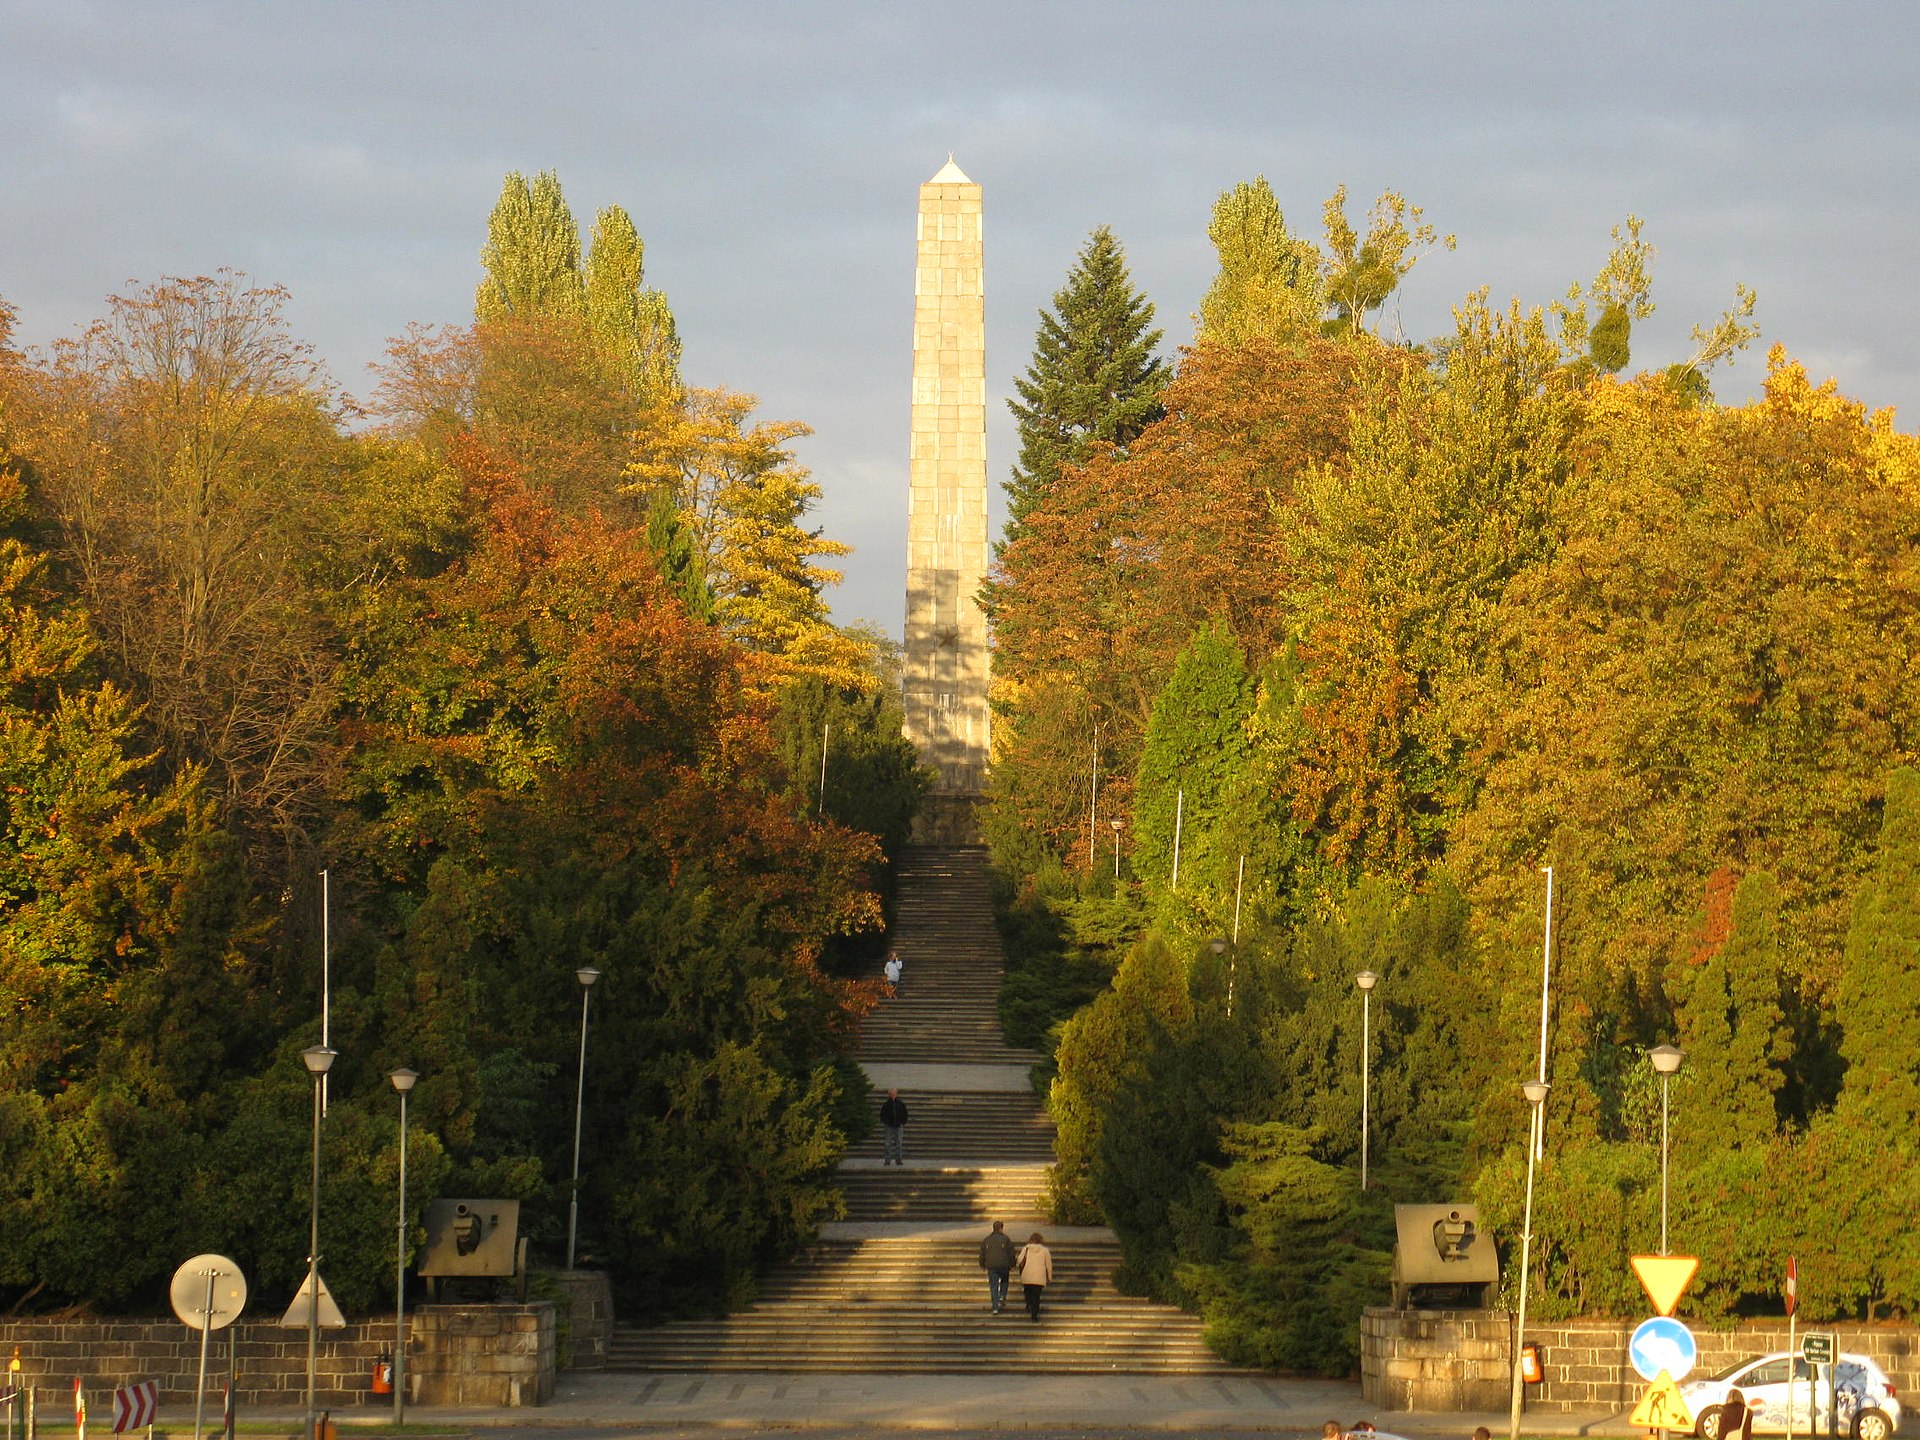 Cytadela – where history, art and nature meet in one special park in Poznań.